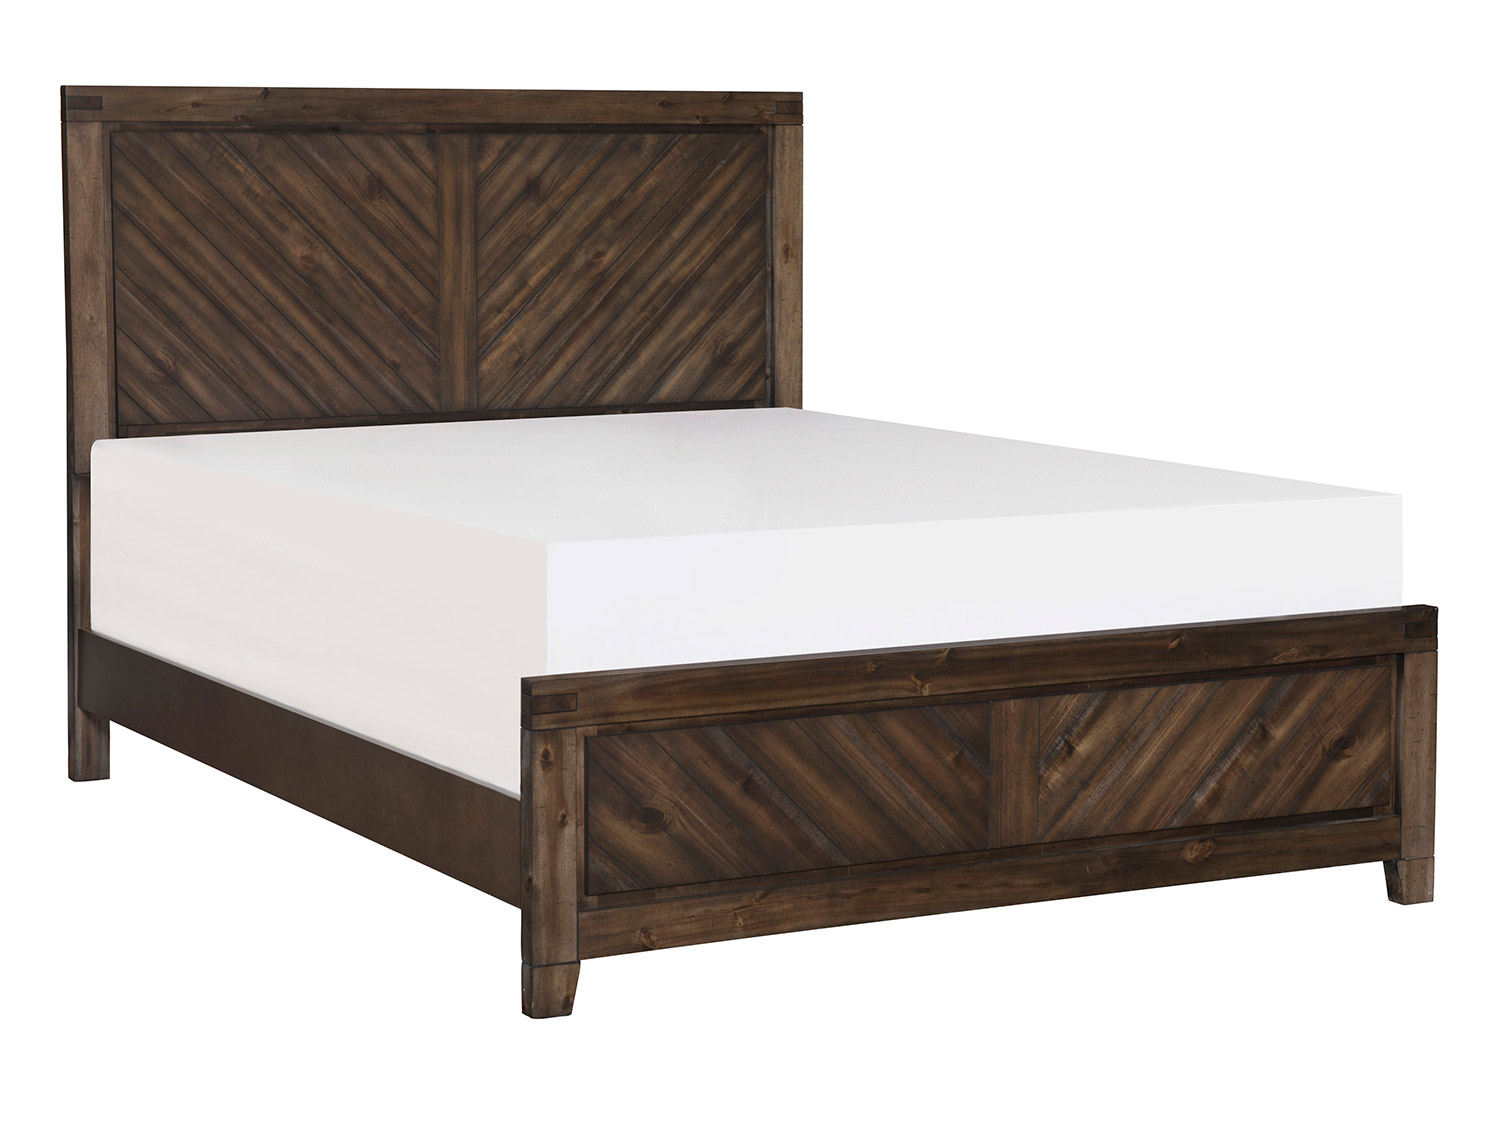 Homelegance Parnell Bed - Rustic Cherry